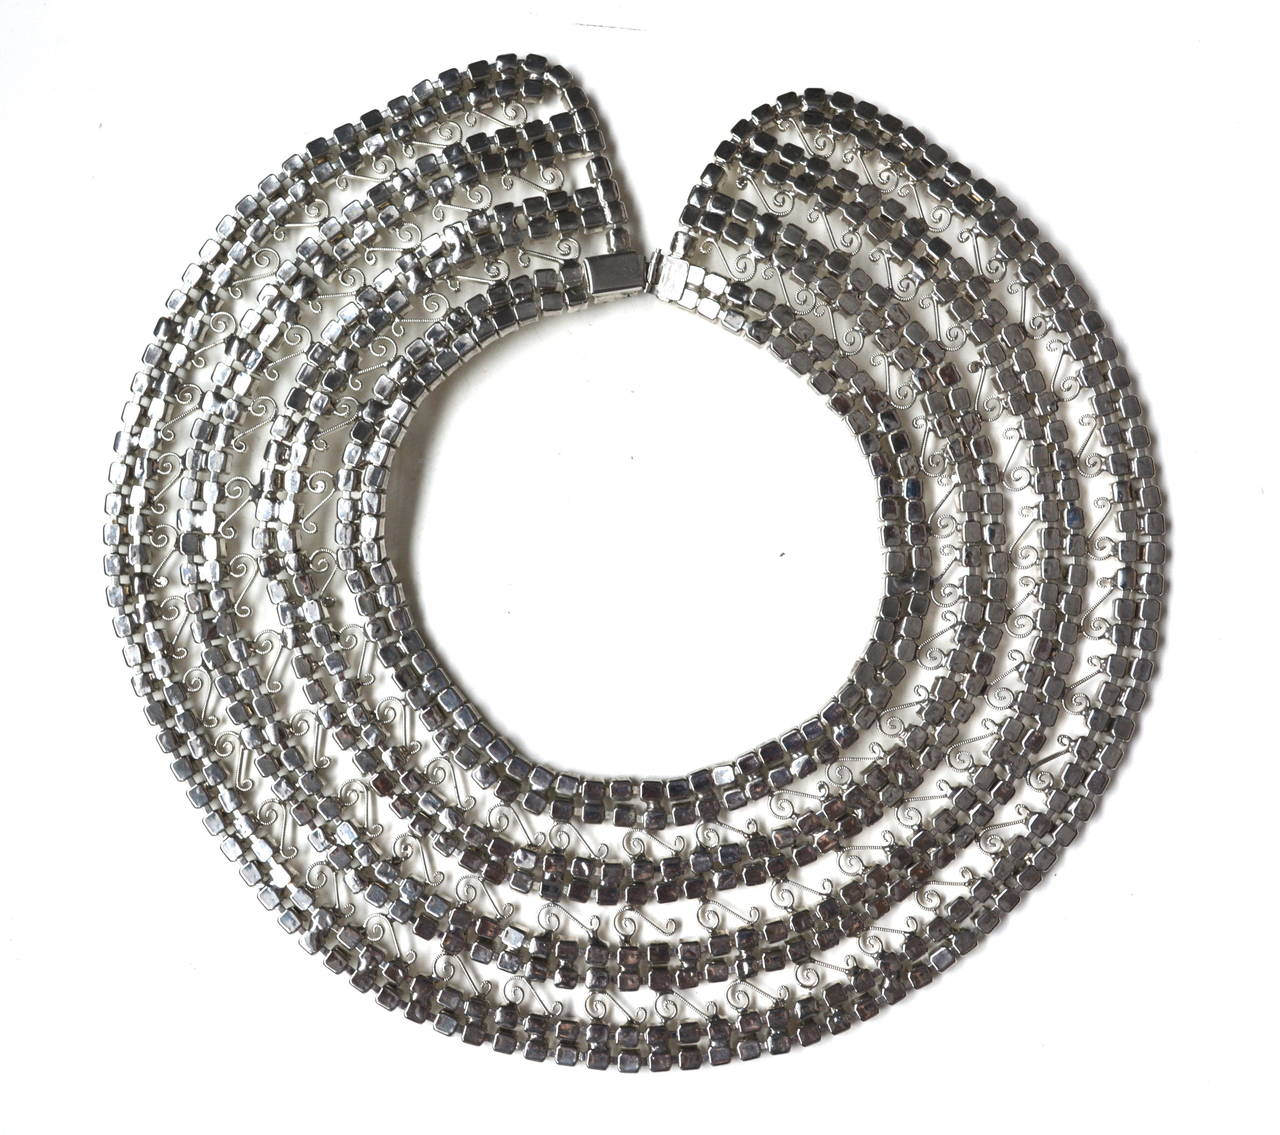 1950s Rhinestone Collar In Excellent Condition For Sale In Litchfield County, CT